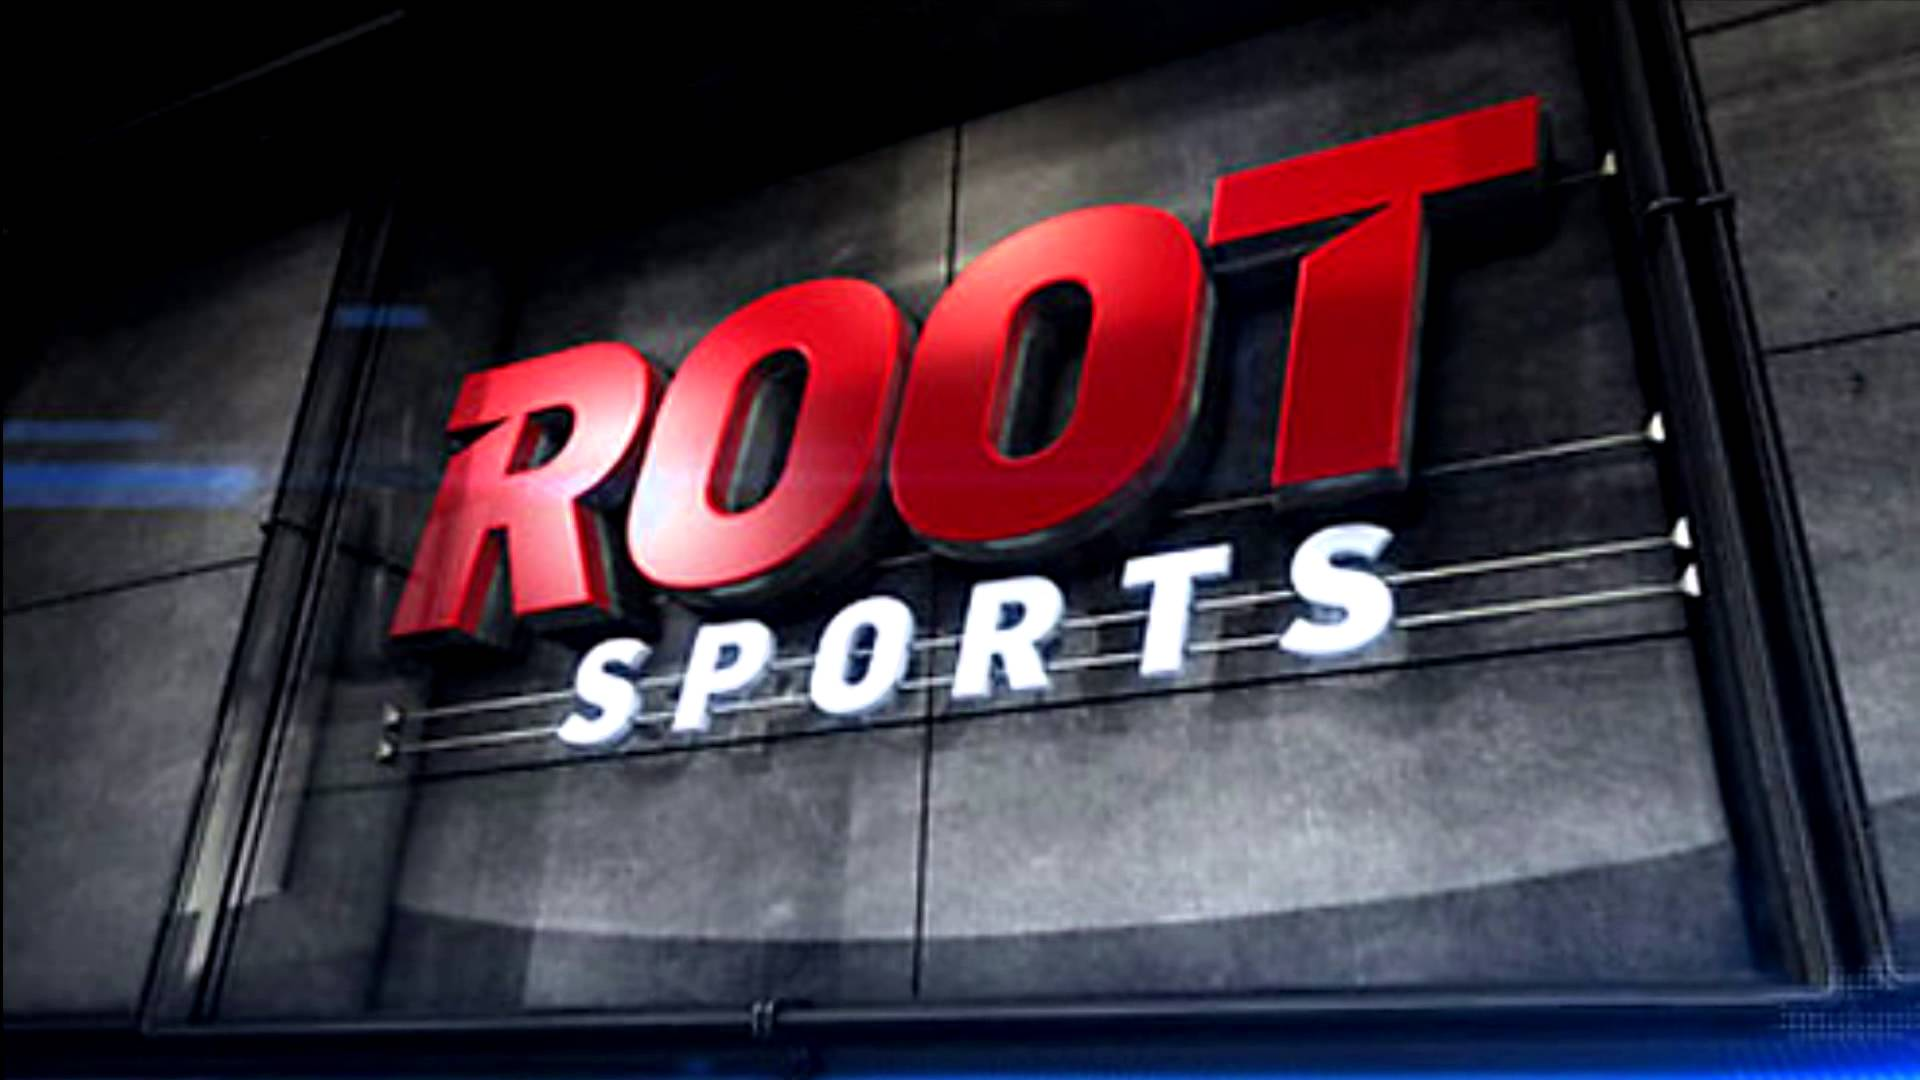 at t has announced that next month it will rebrand root sports as at t sportsnet